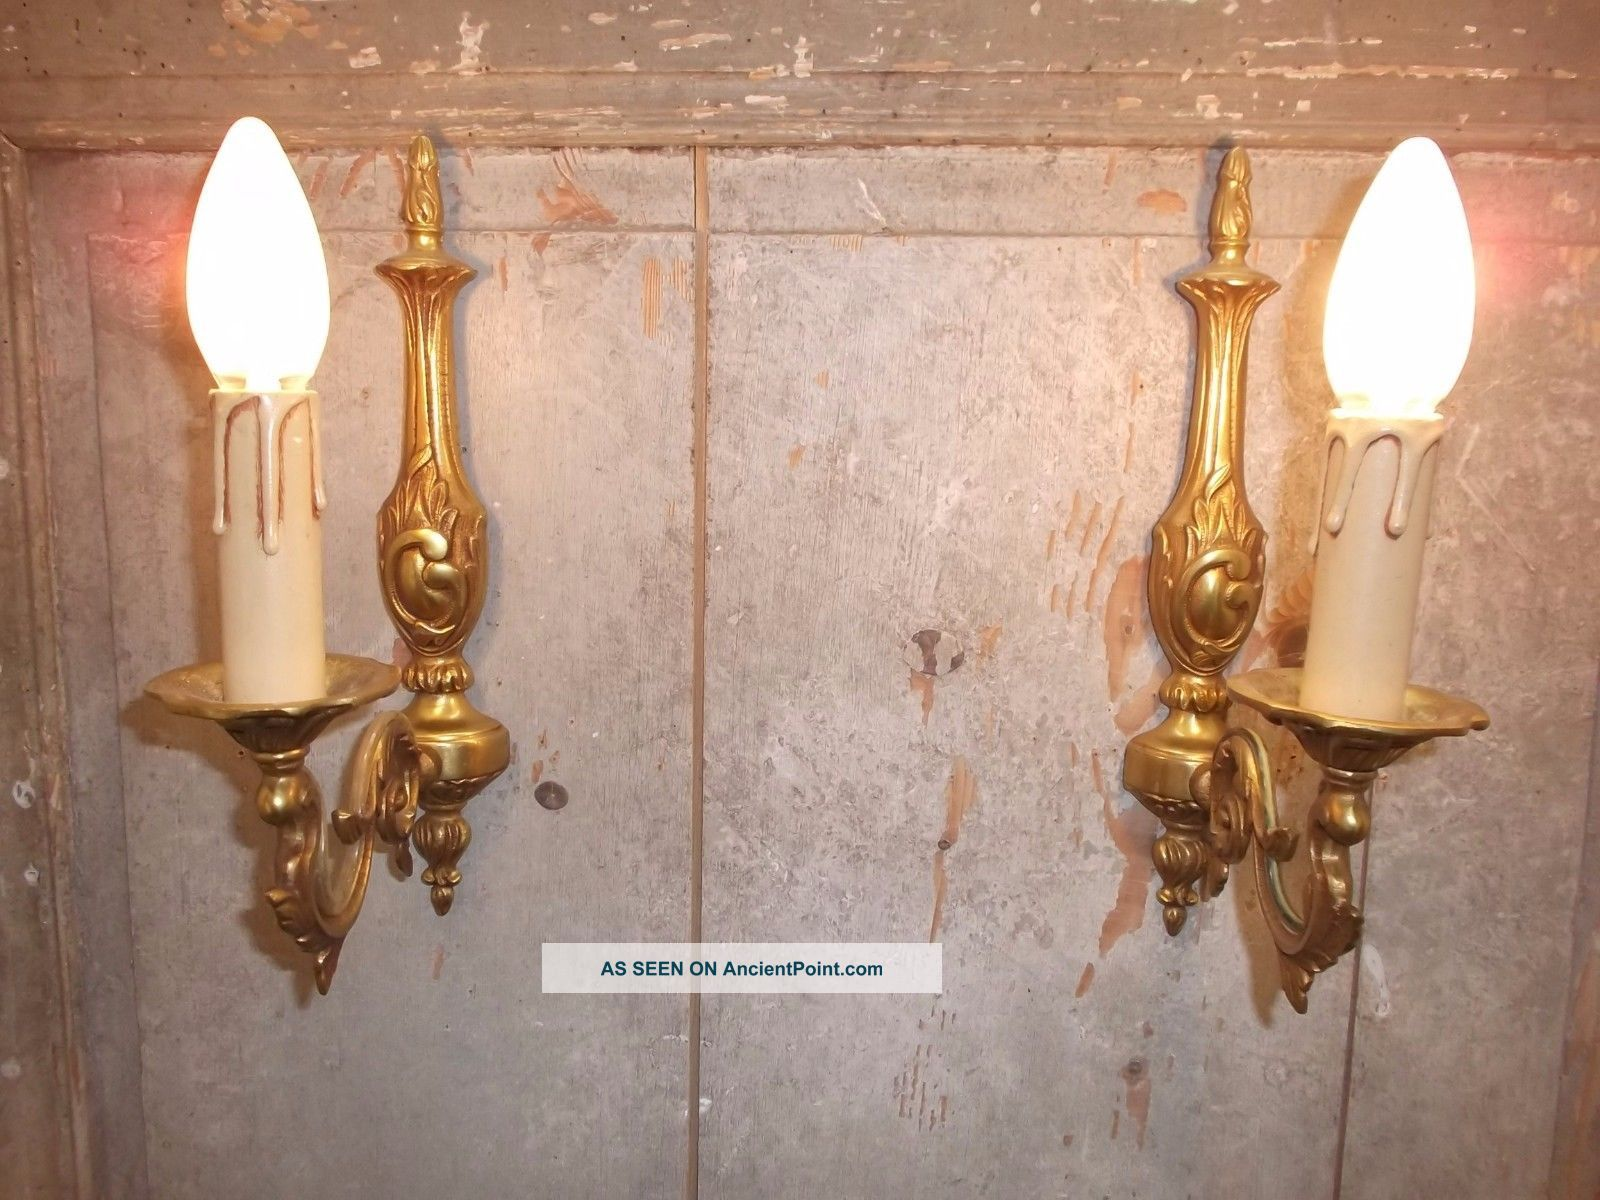 French A Gold Bronze Wall Light Sconces Classic Detailed Vintage Chandeliers, Fixtures, Sconces photo